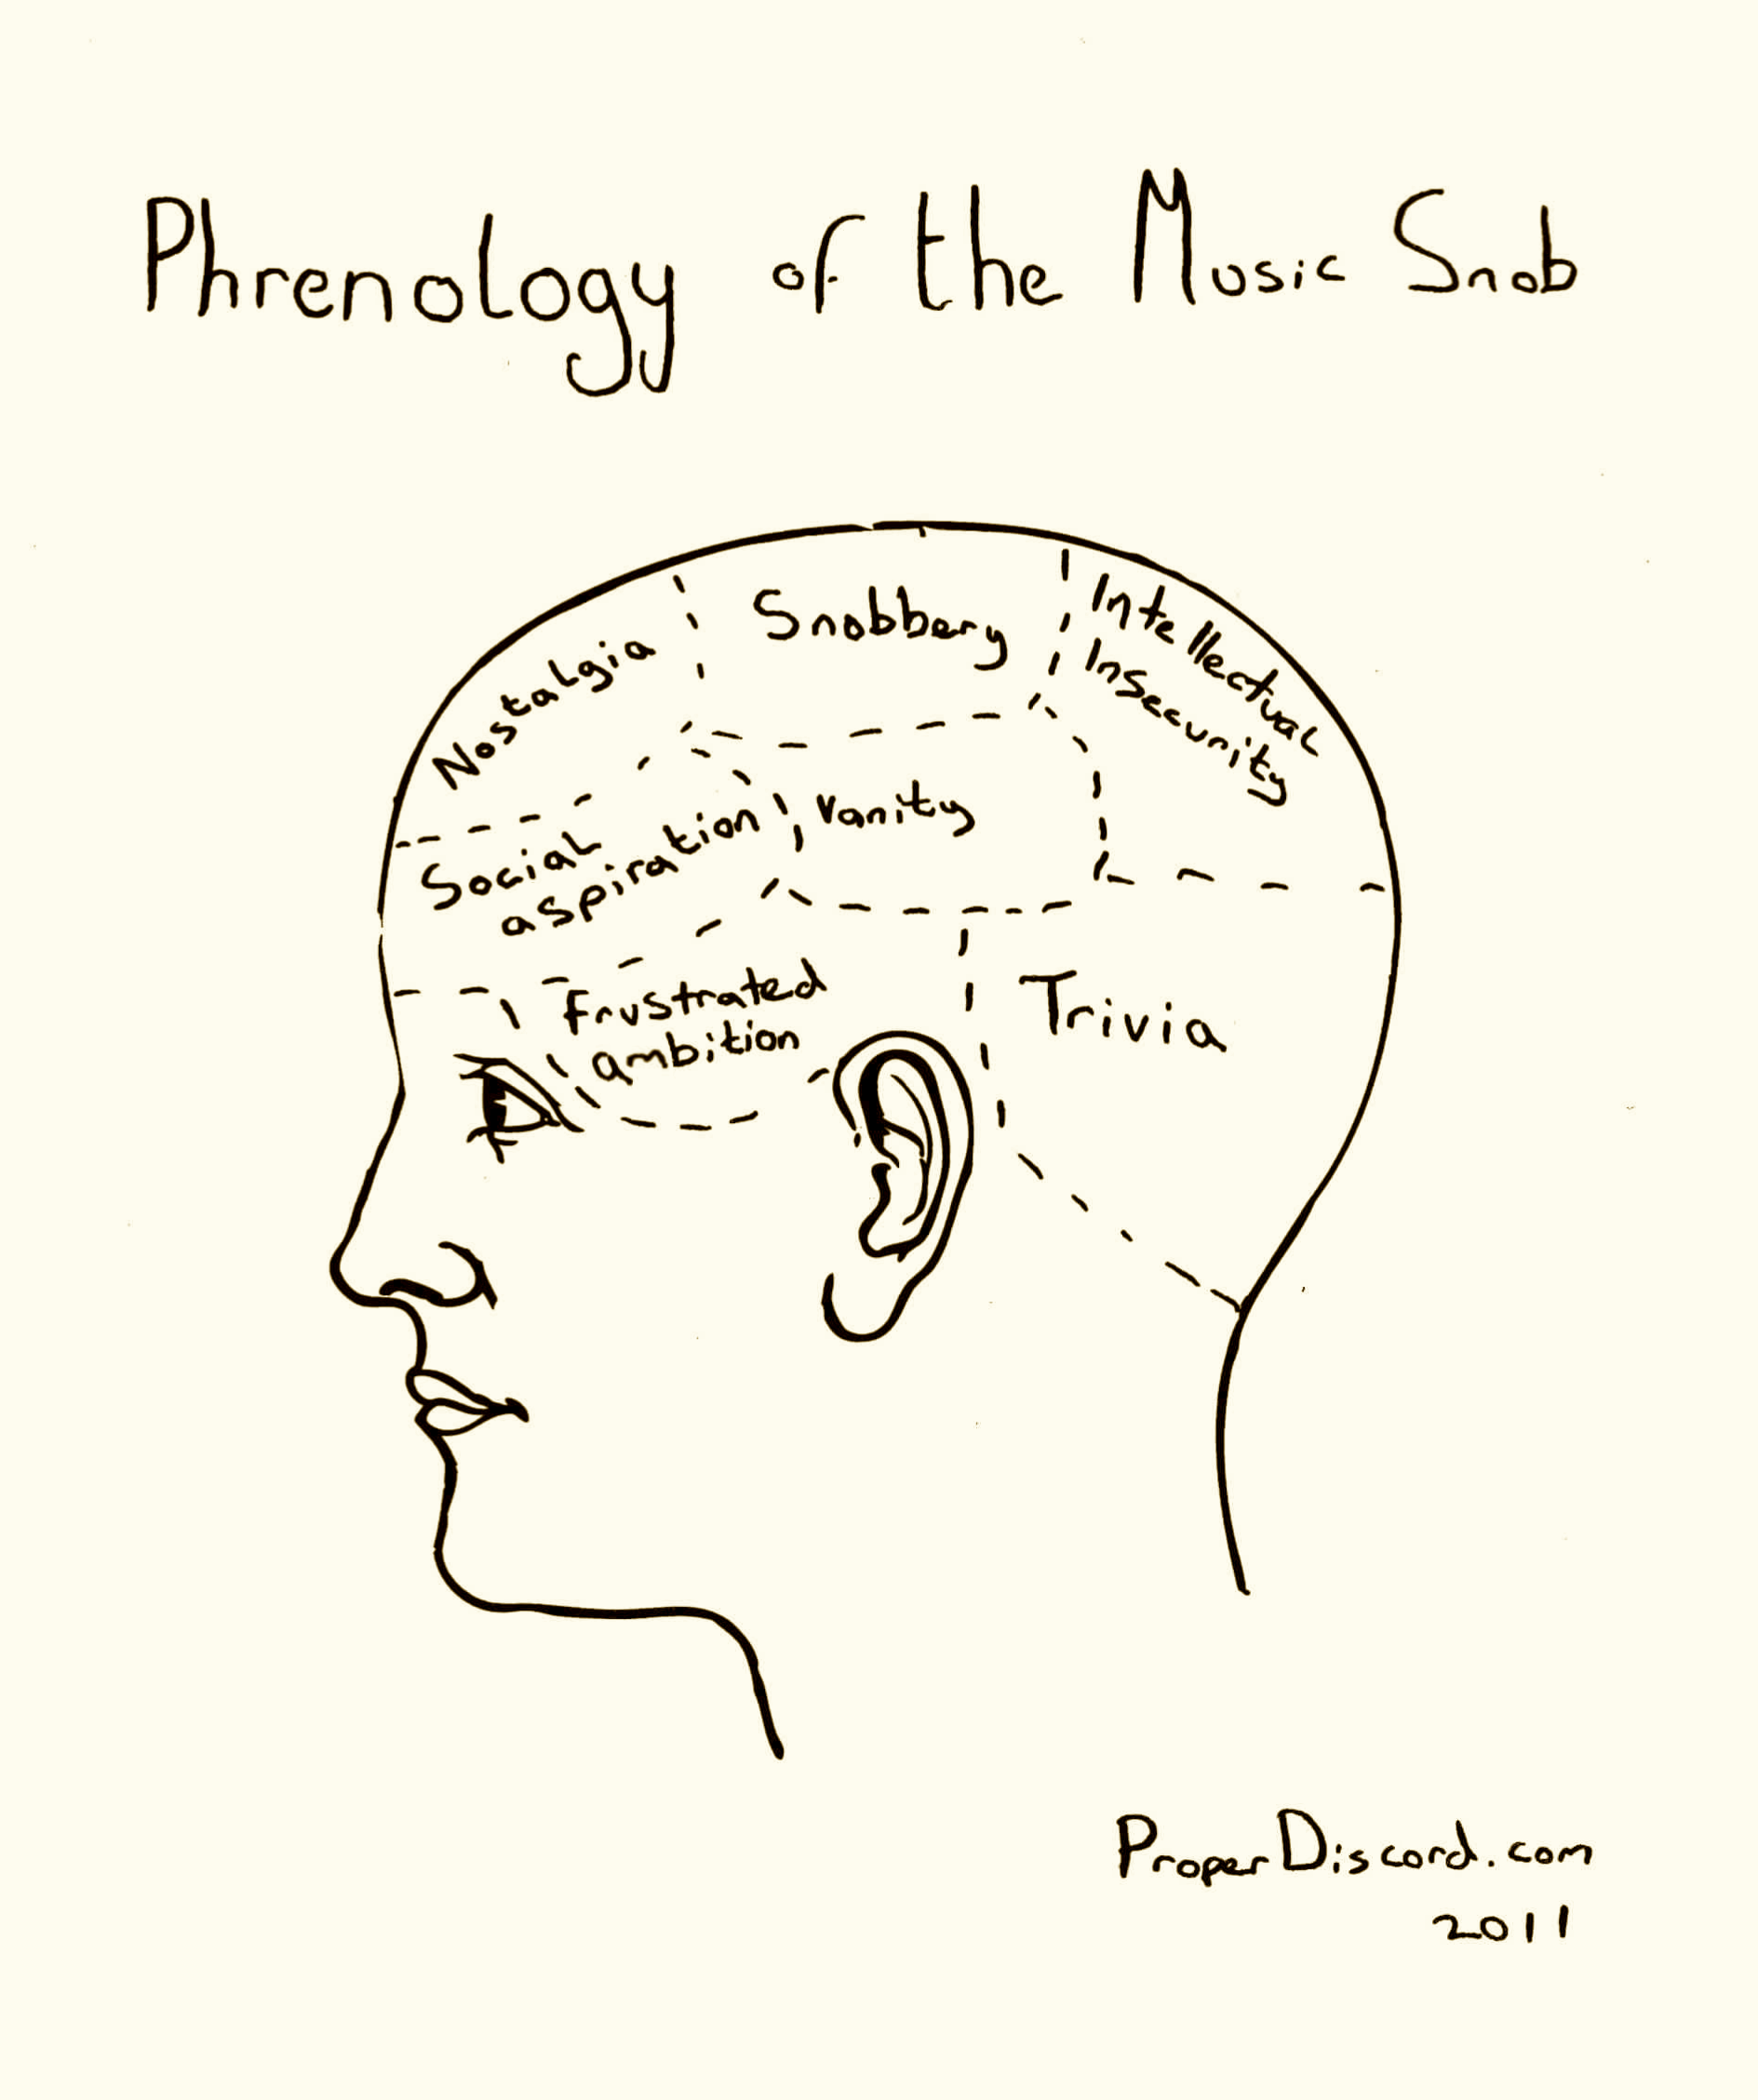 music snob - Google Search | Music poster, Nostalgia, Phrenology